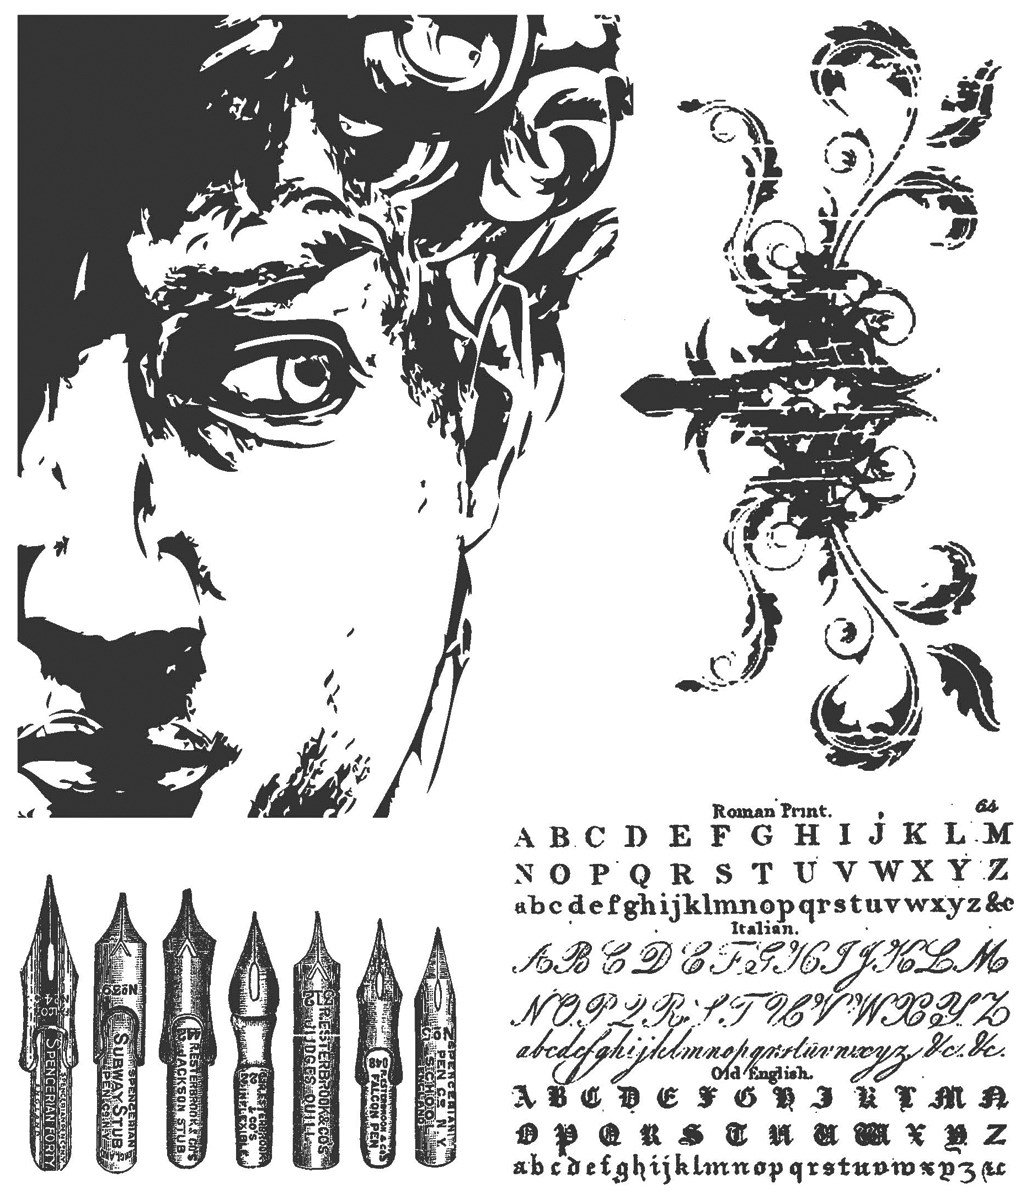 Stampers Anonymous Tim Holtz Cling Rubber Stamp Set, Artful Artifacts